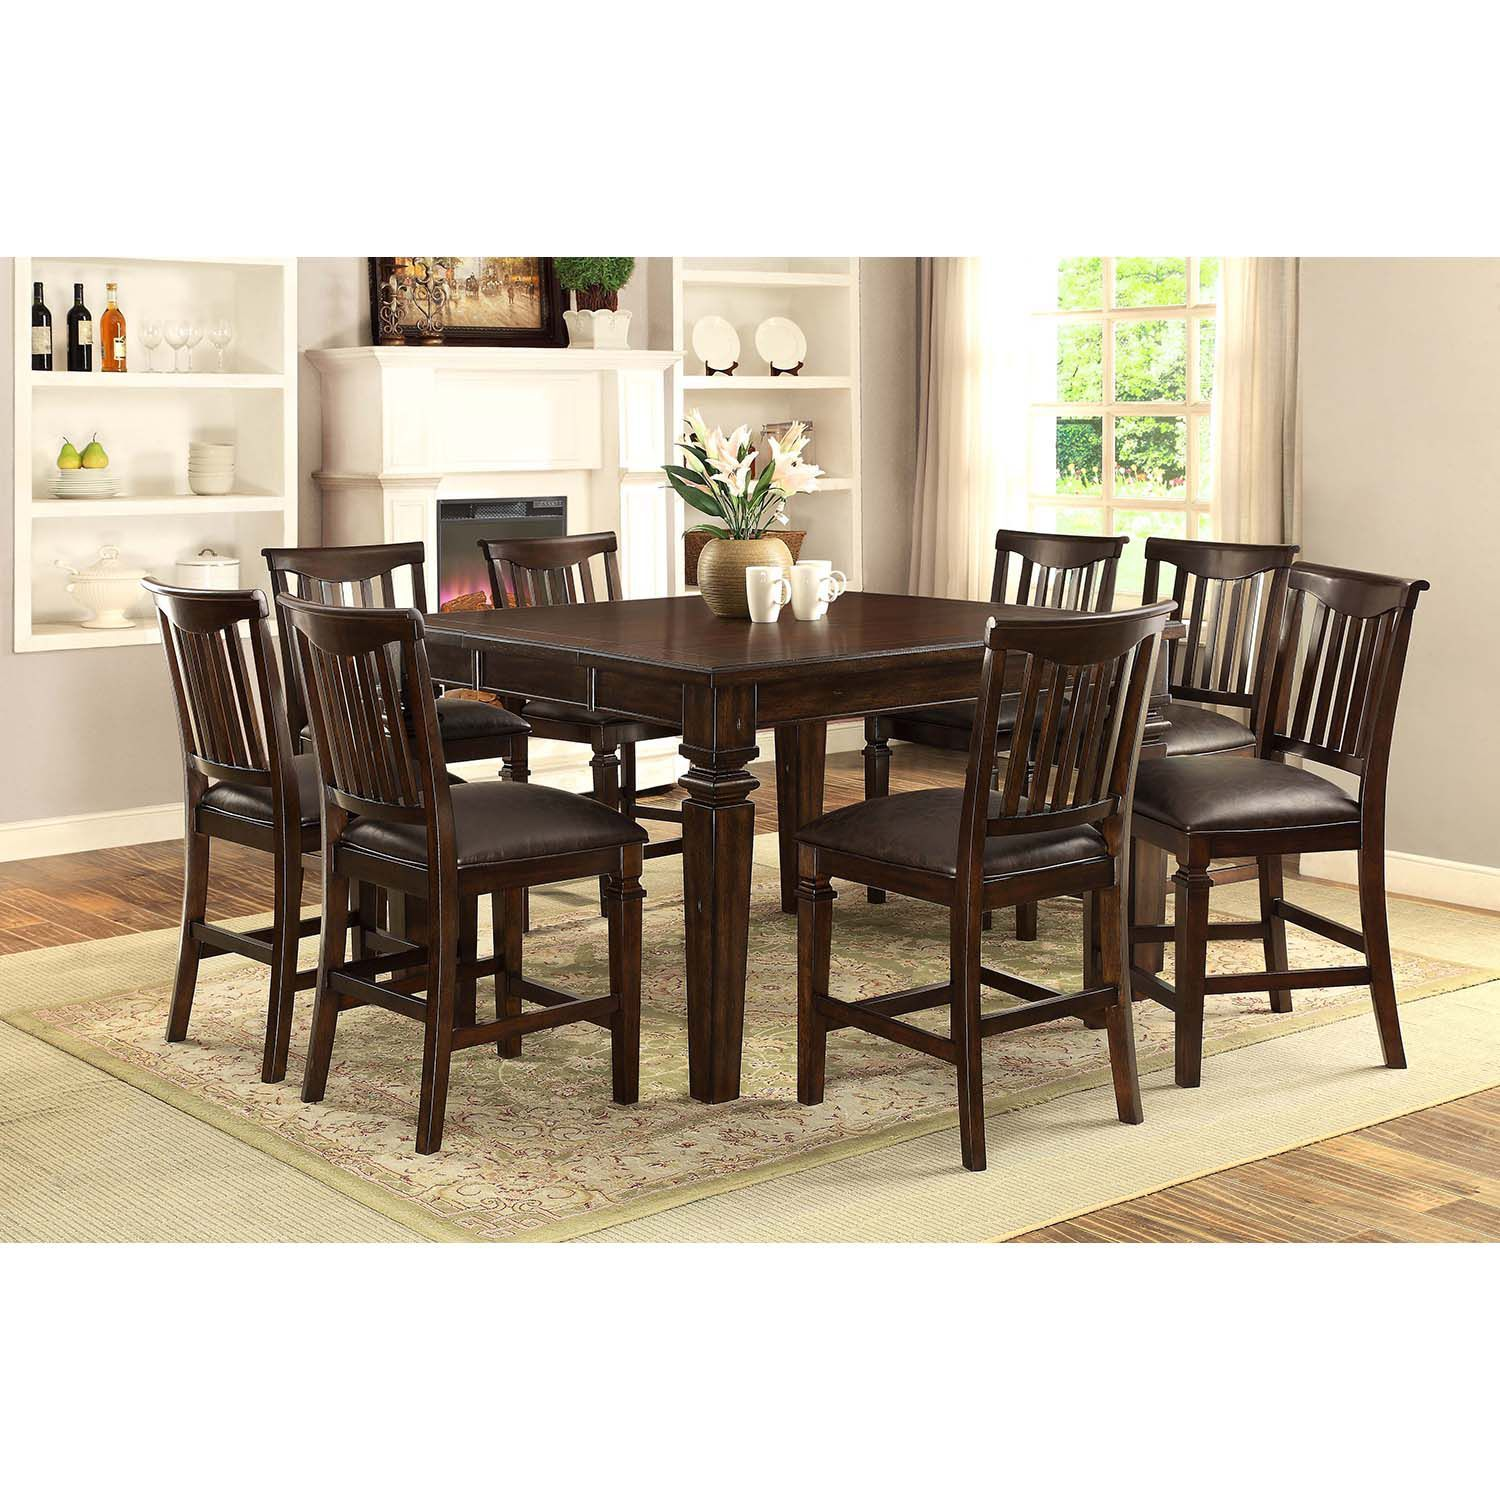 Vanderhill 9 Piece Dining Set Solid Wood Chairs Dining Dining Set